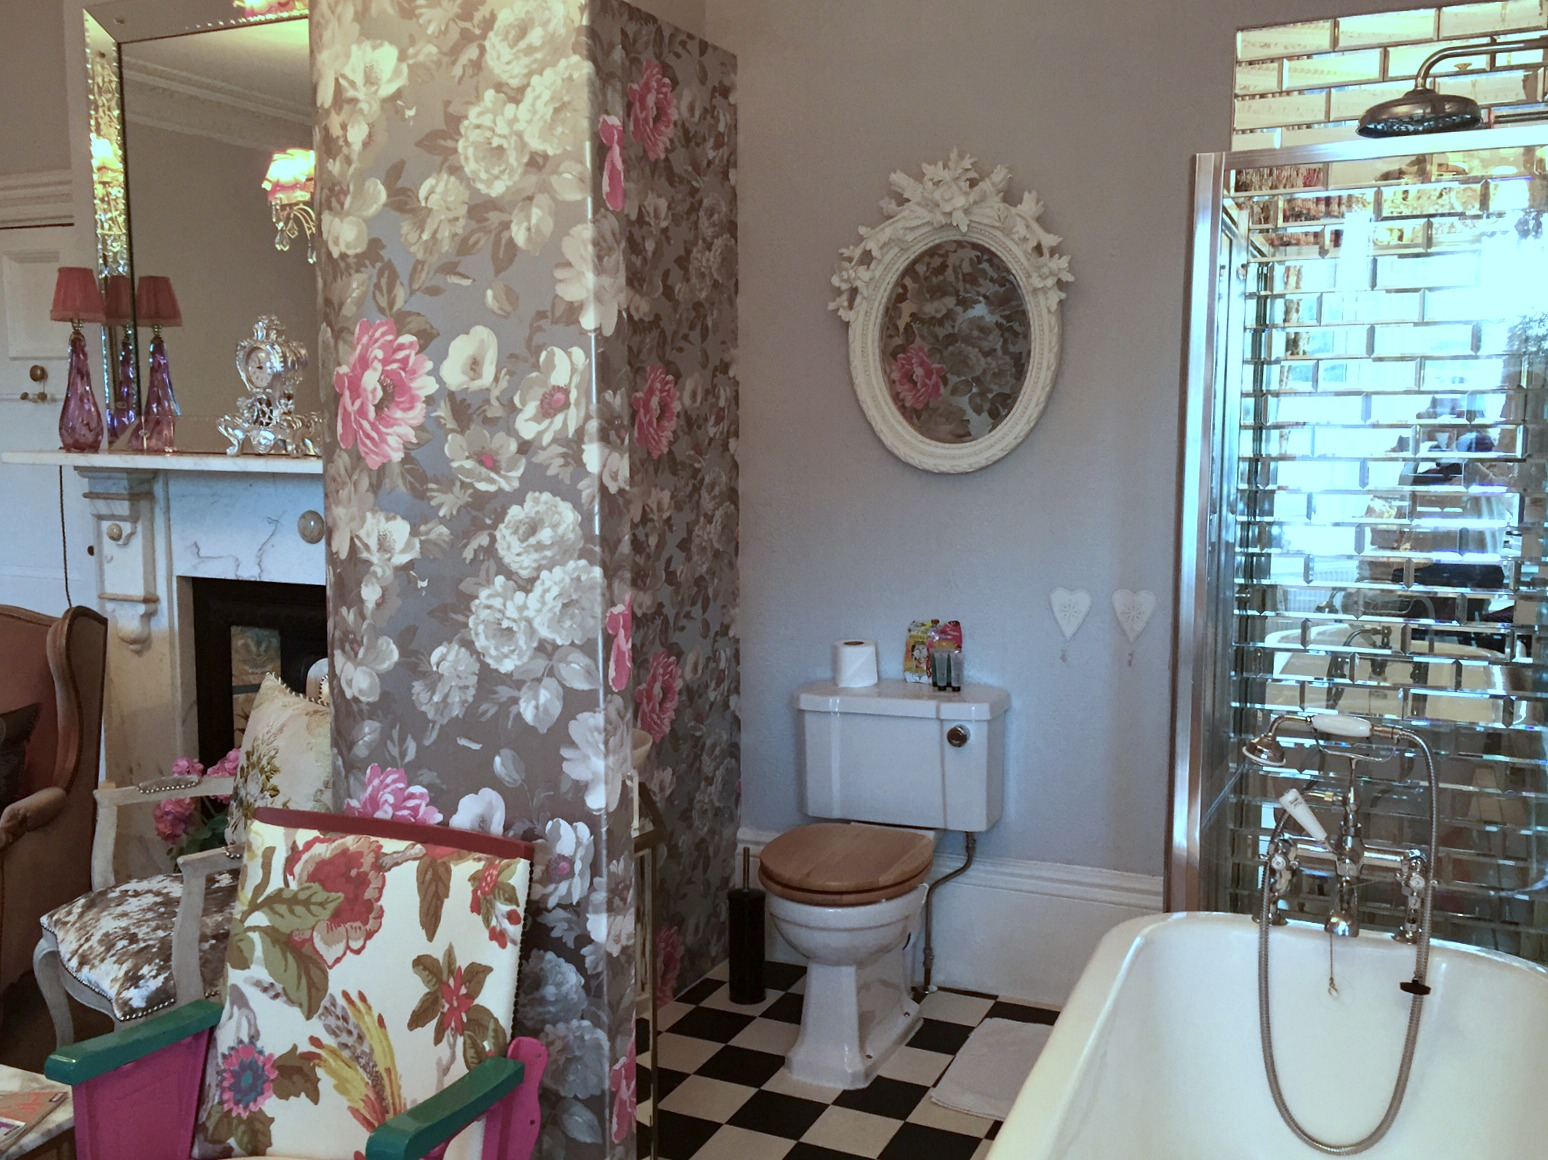 The Rosebery Hotel bathroom